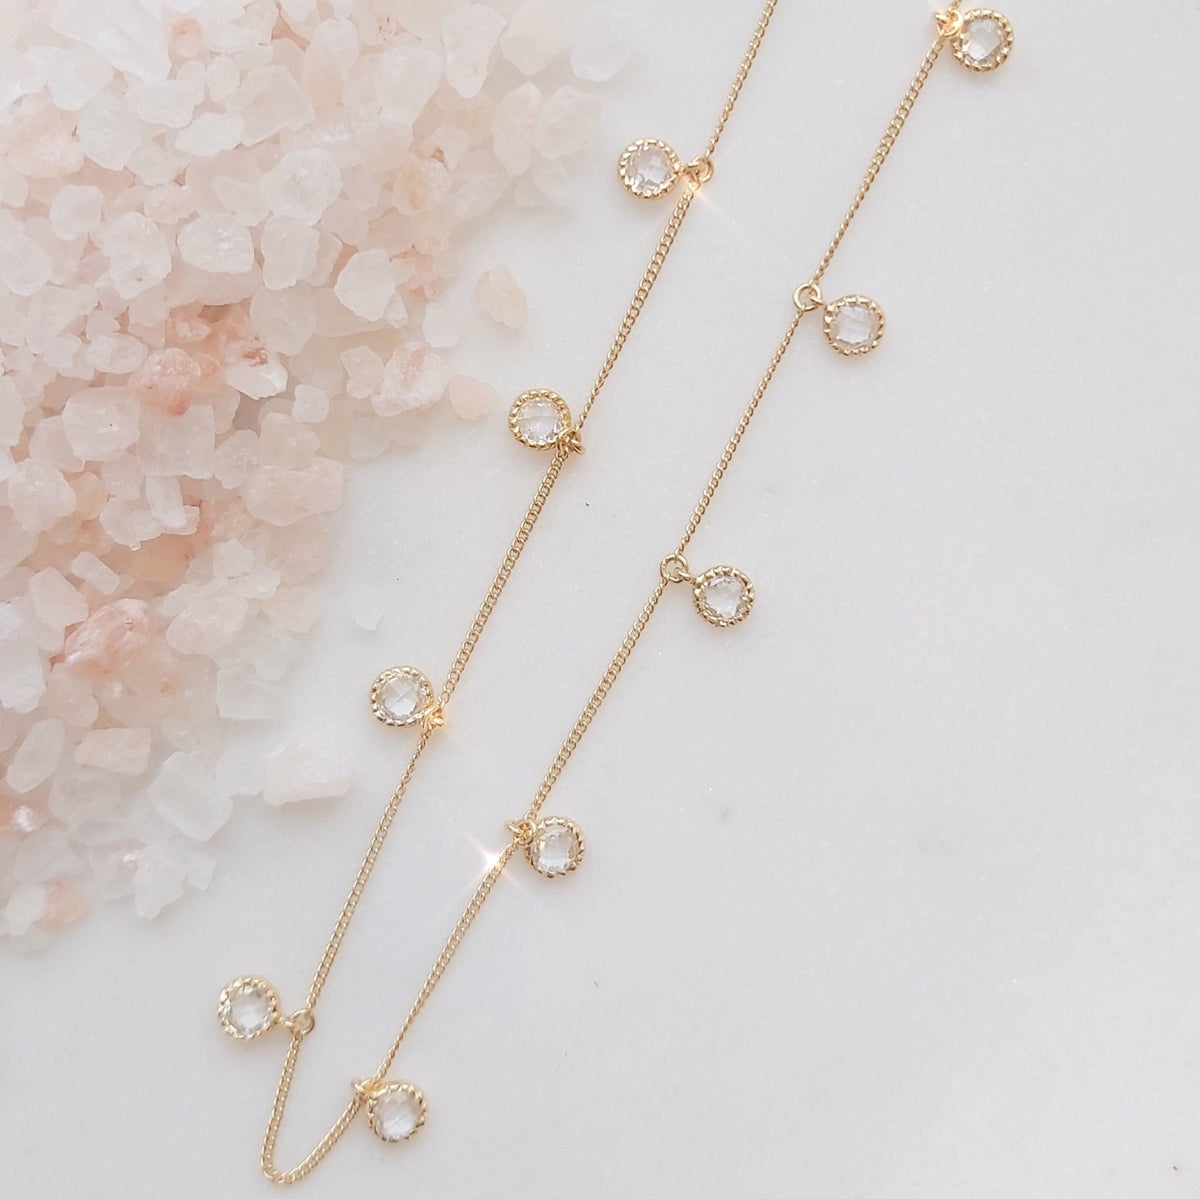 DAINTY LEGACY COLLAR NECKLACE - WHITE TOPAZ & GOLD - SO PRETTY CARA COTTER